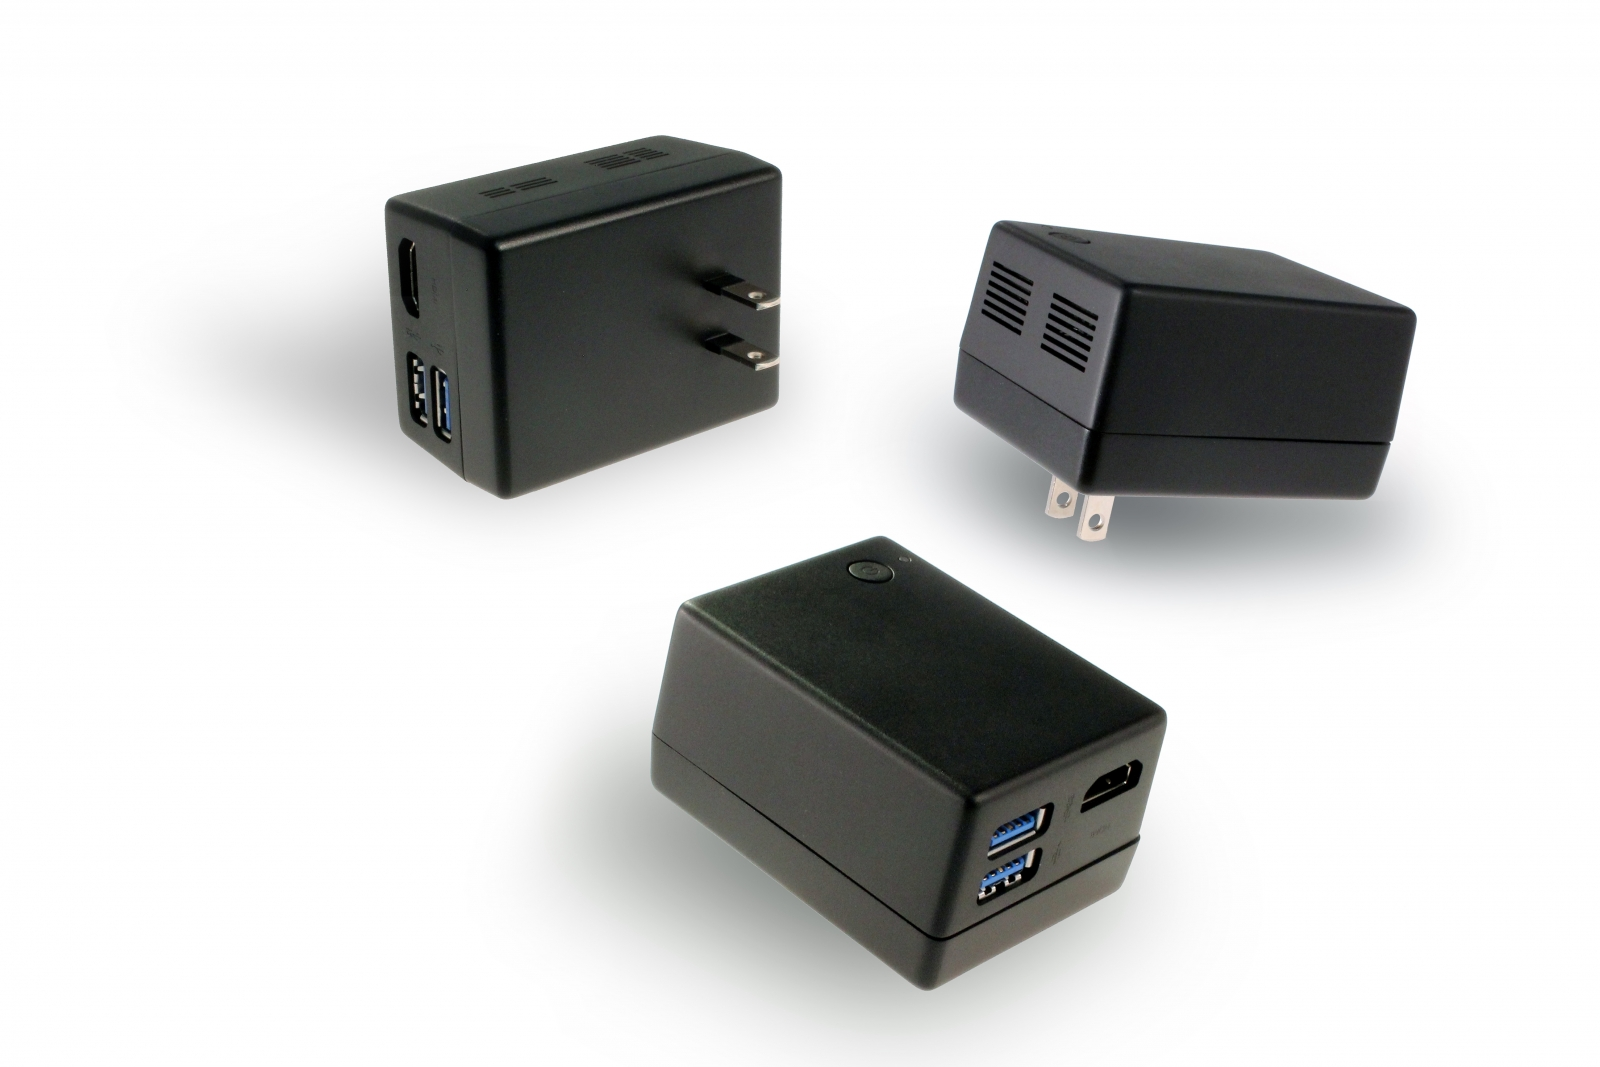 Quanta's Compute Plug tiny Windows 10 PC